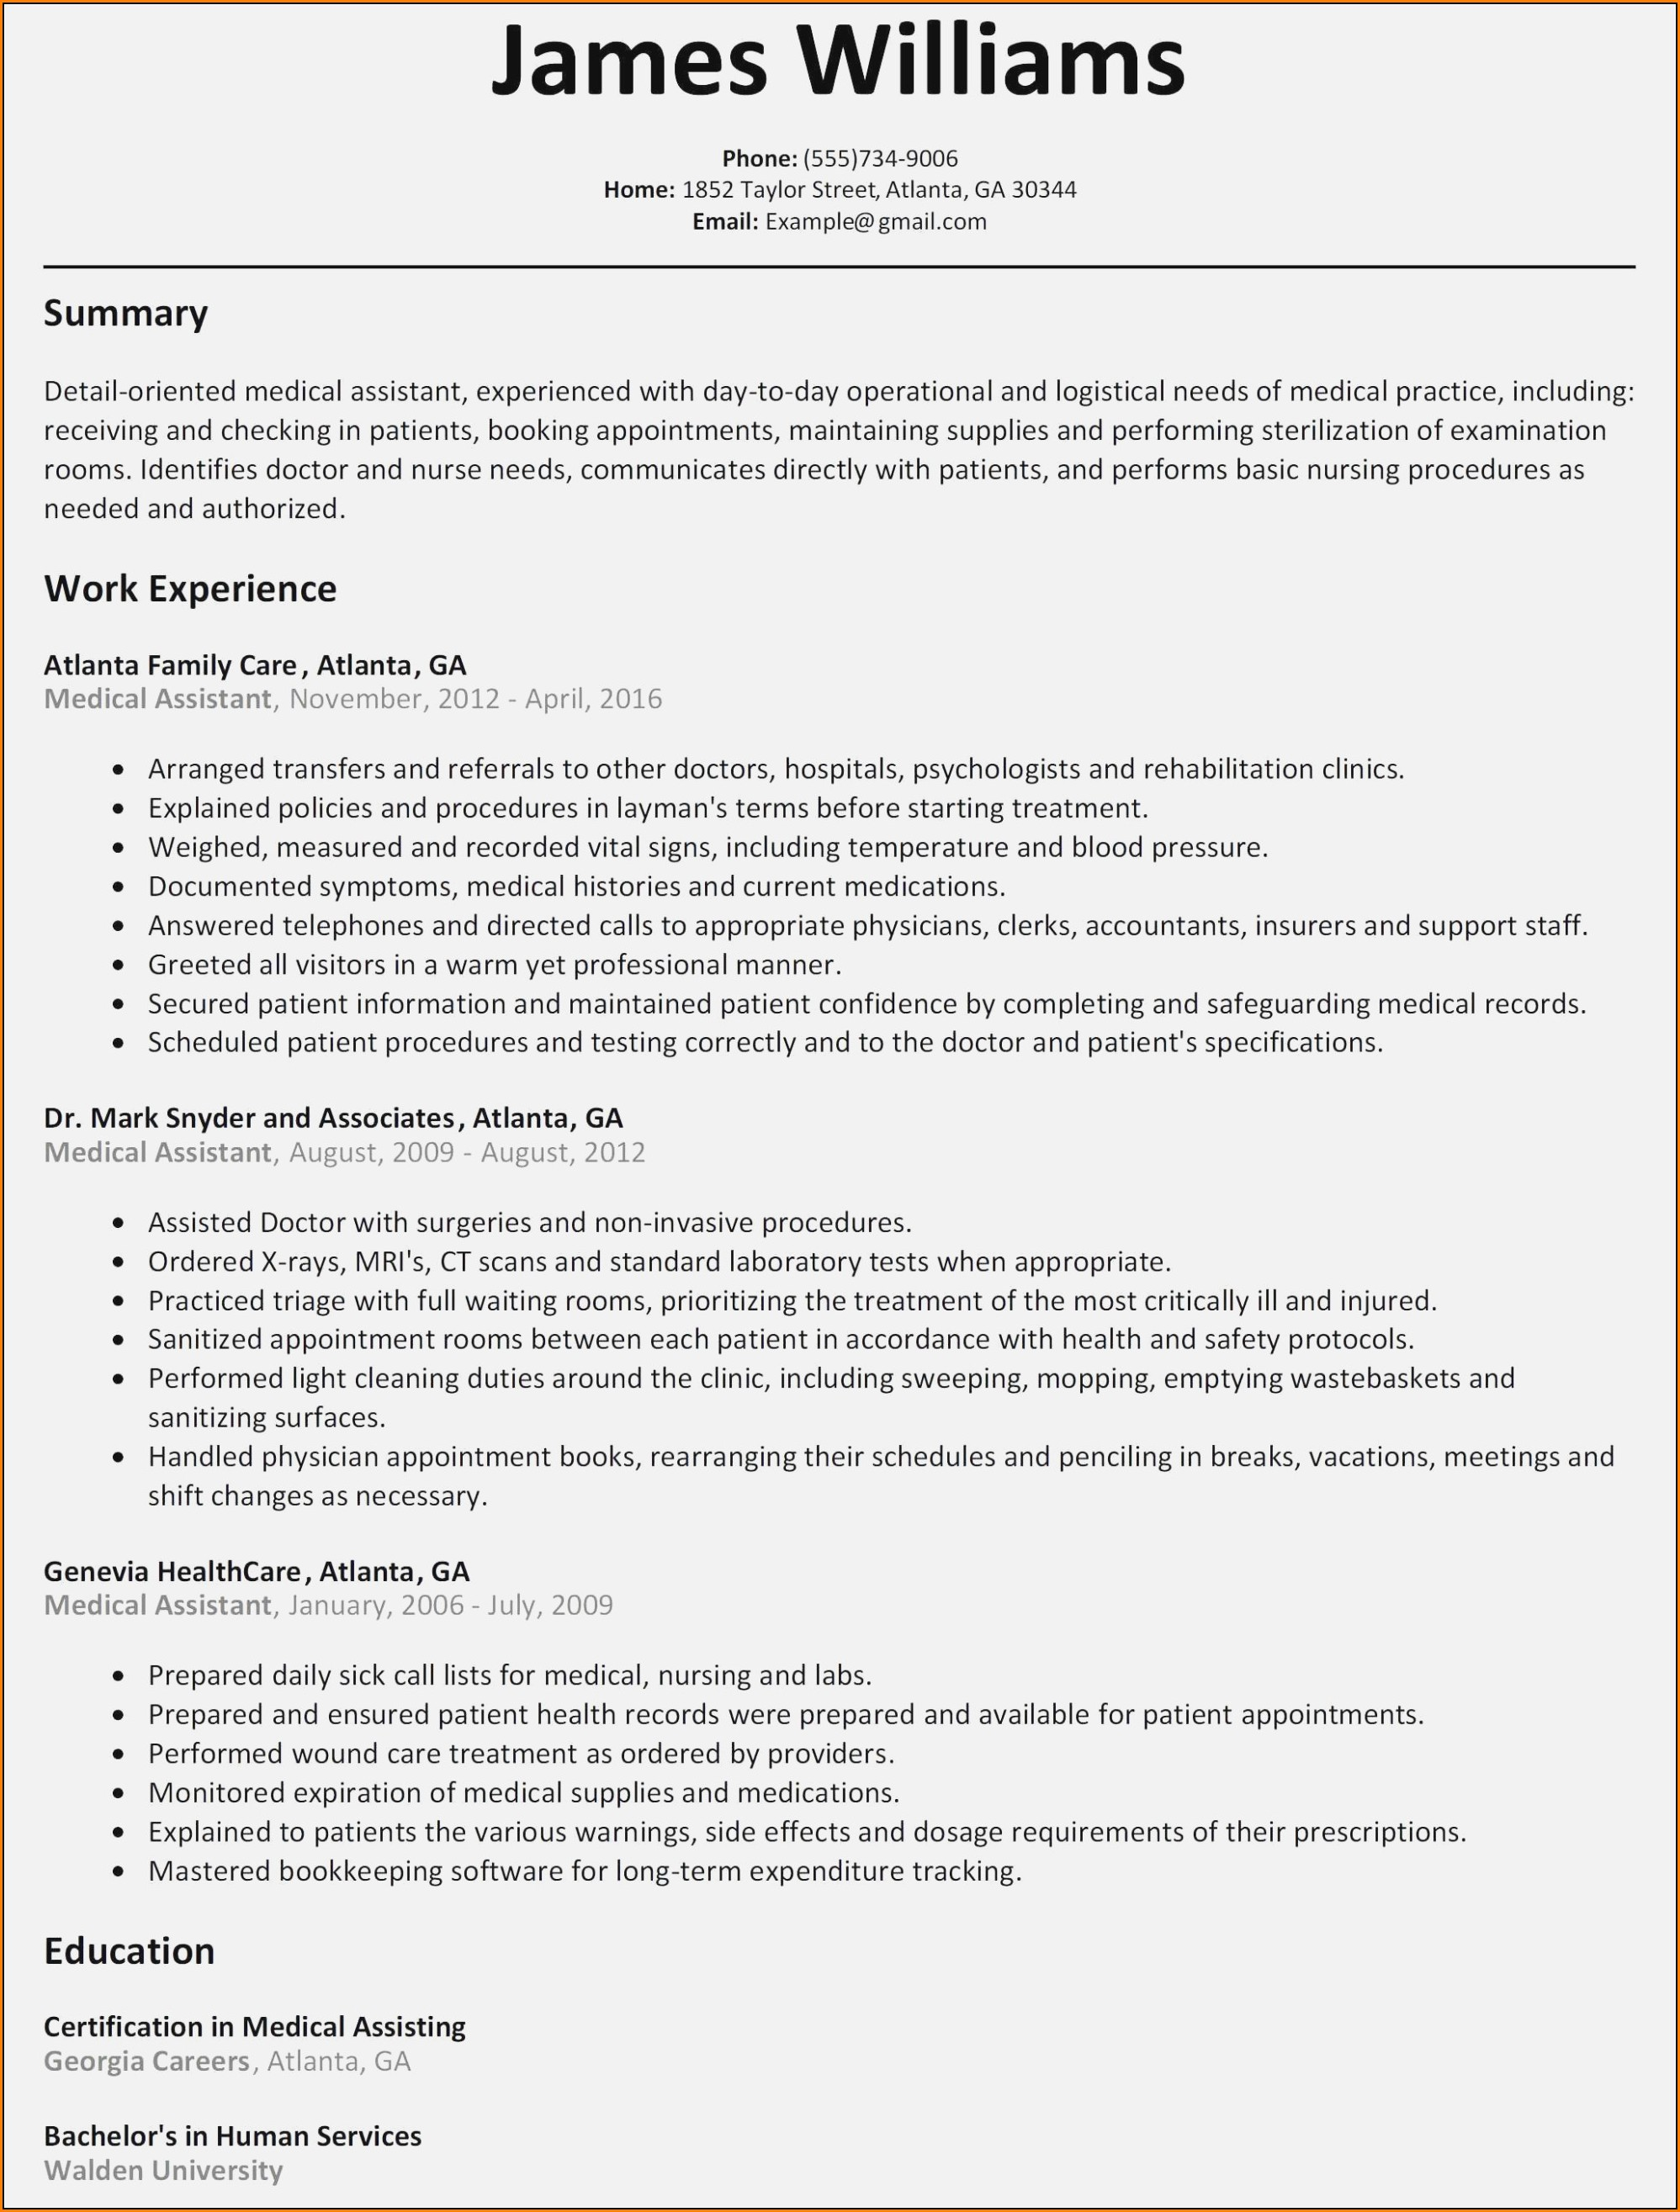 Michigan Works Resume Builder